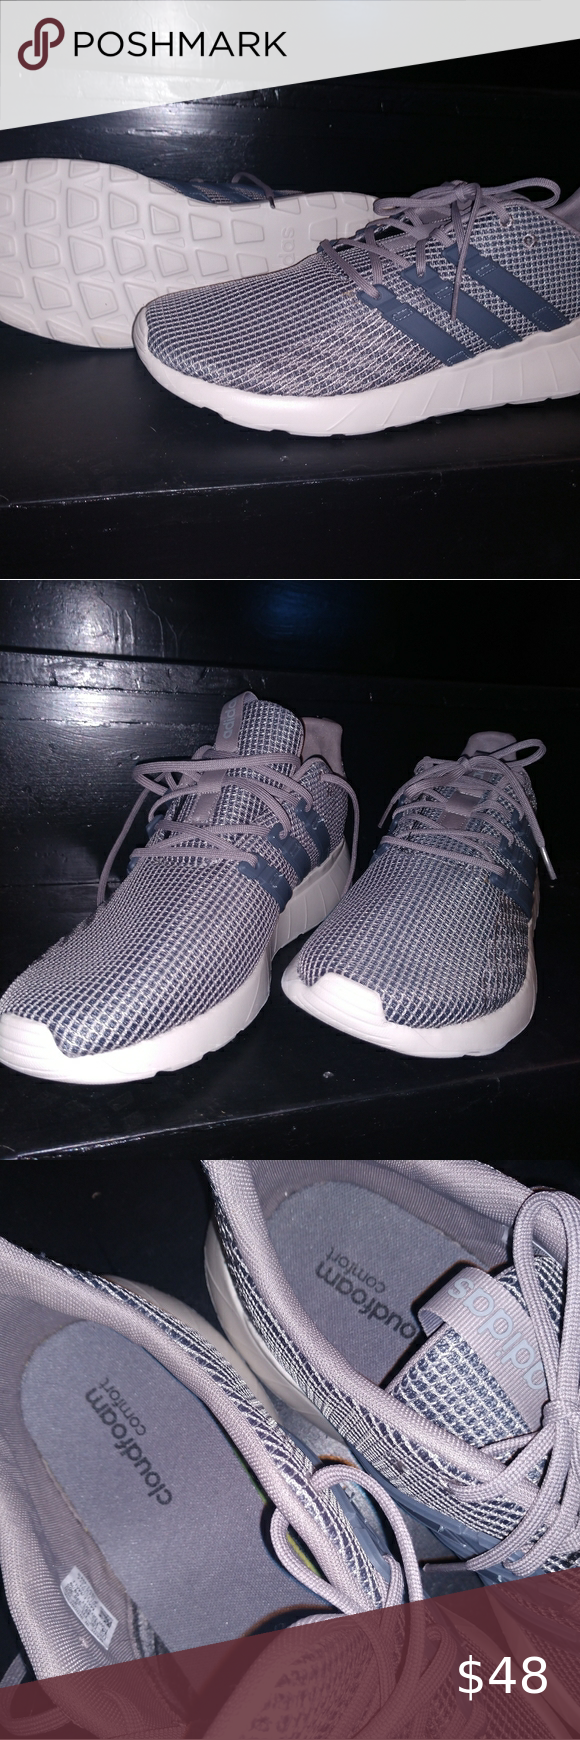 New Adidas Questar Ride Sneakers in